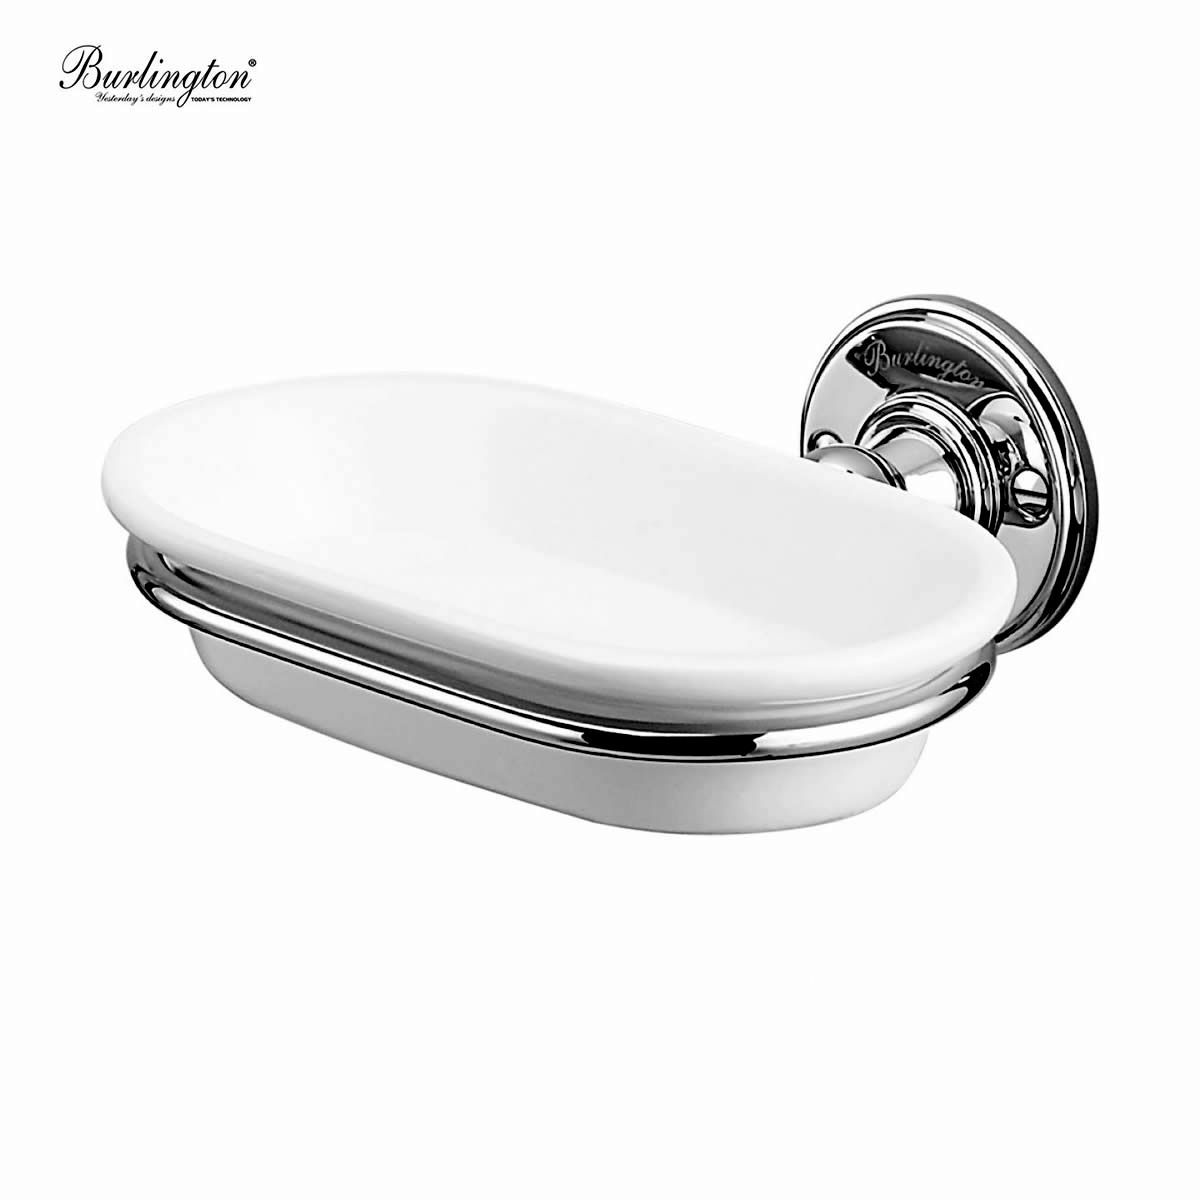 Burlington wall mounted soap dish uk bathrooms for Wall mounted soap dishes for bathrooms